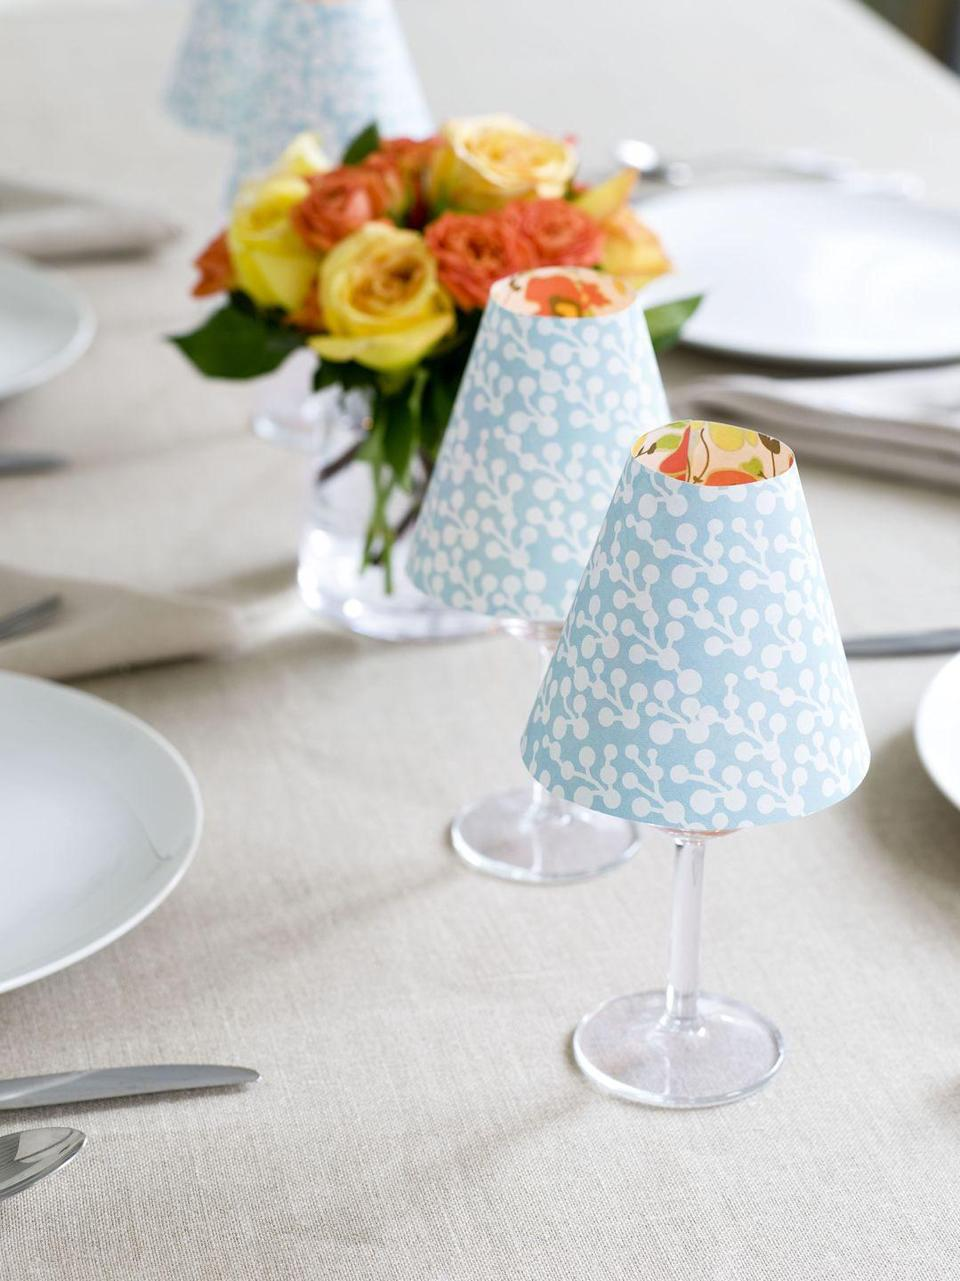 "<p>The dinner table shines brighter with a few clever ""lamps."" Just pop a LED tea light in a wine glass and top it with a paper shade. </p><p><em><a href=""https://www.goodhousekeeping.com/home/craft-ideas/how-to/a19133/candle-lampshade-craft/"" rel=""nofollow noopener"" target=""_blank"" data-ylk=""slk:Get the tutorial »"" class=""link rapid-noclick-resp"">Get the tutorial »</a></em> </p>"